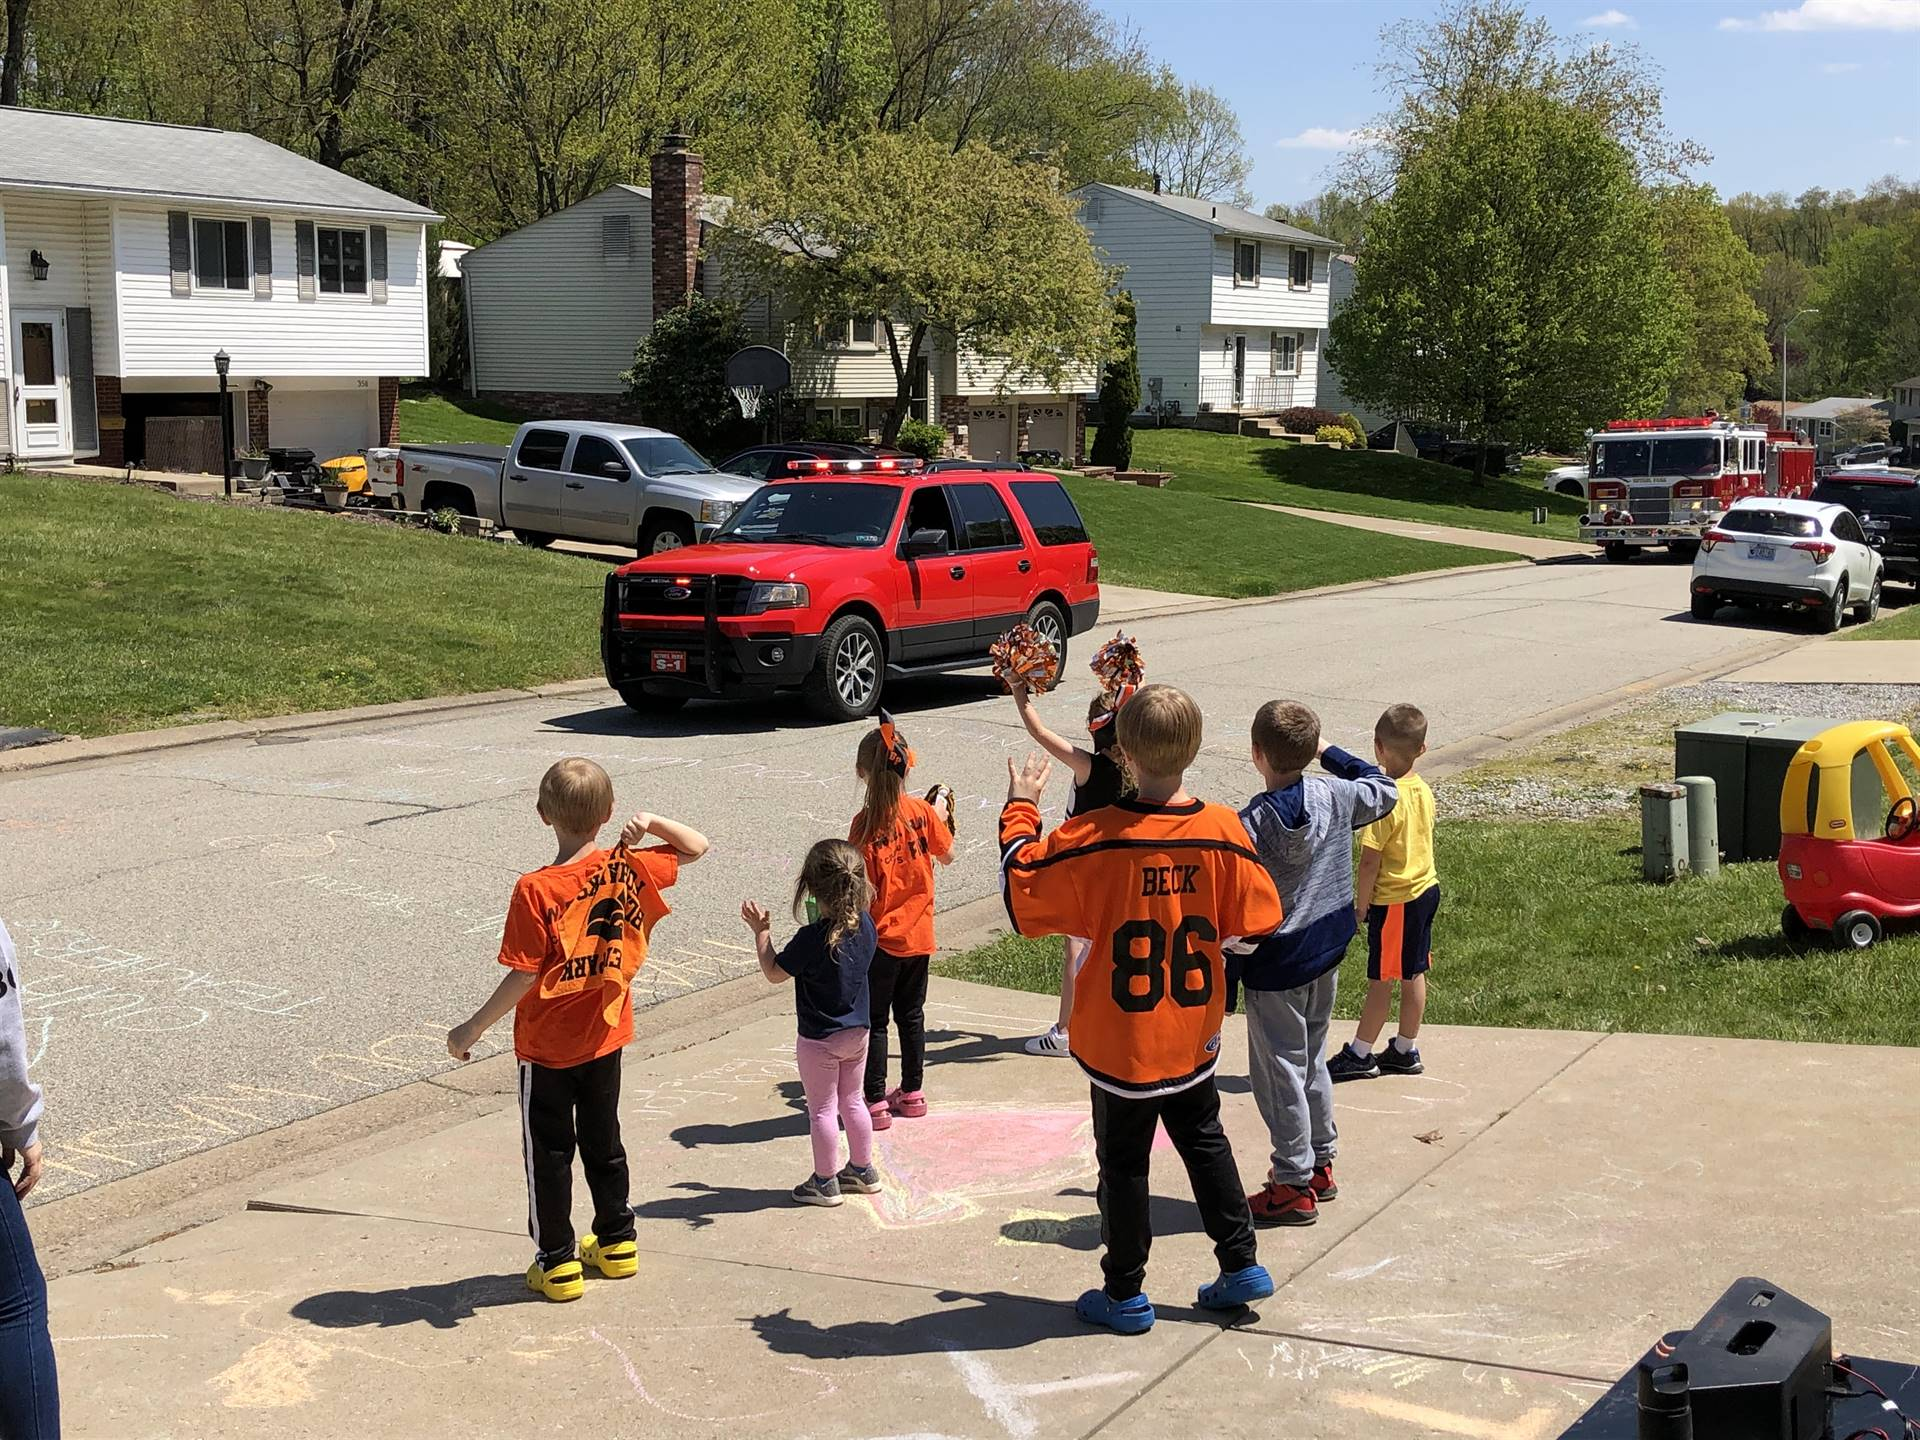 Students waving as the parade passes by